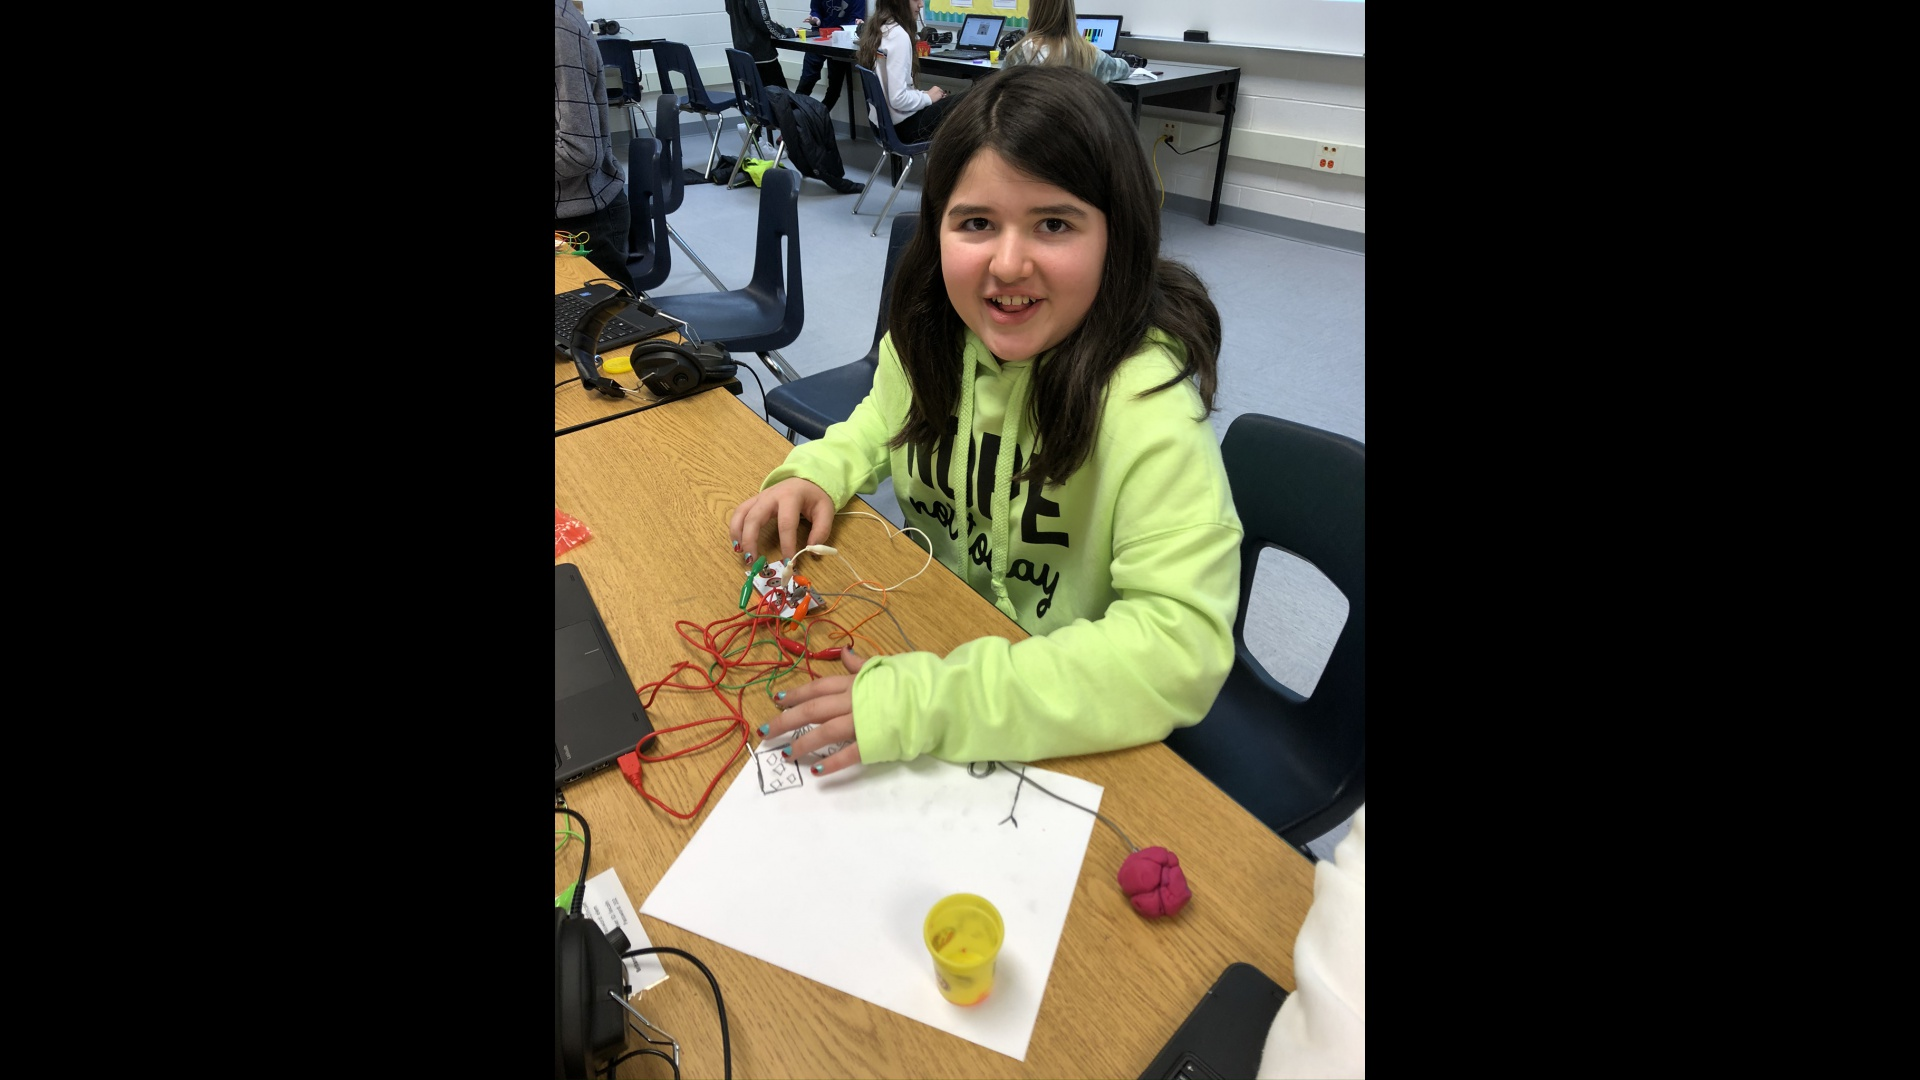 slidshow image - Makey Makey STEM Activity -